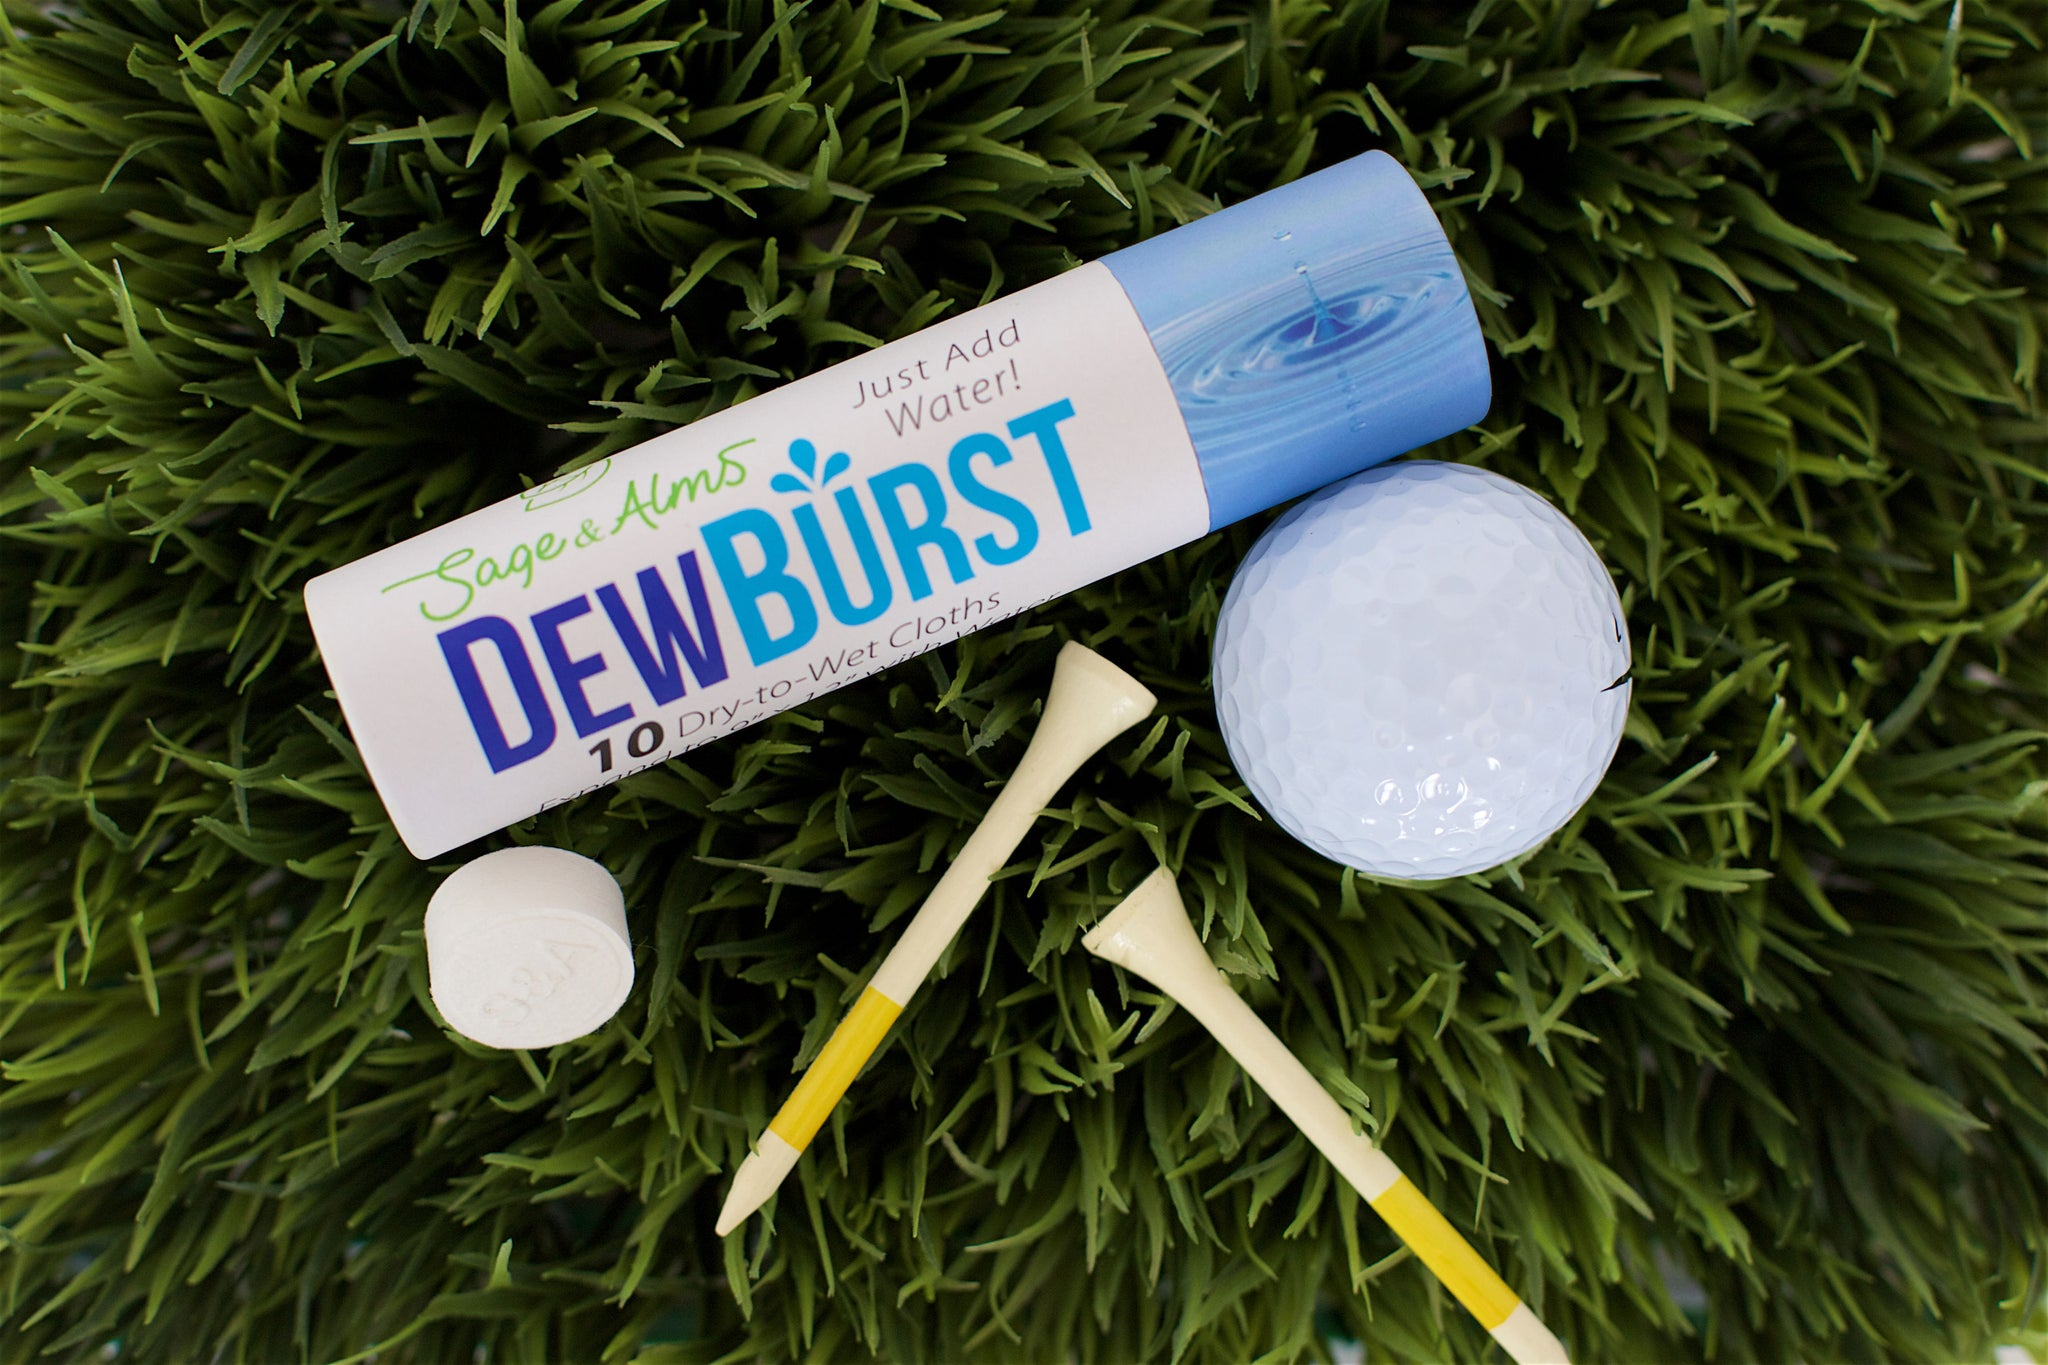 20 Tubes | 200 Cloths | $2.00 Per Tube | DewBurst